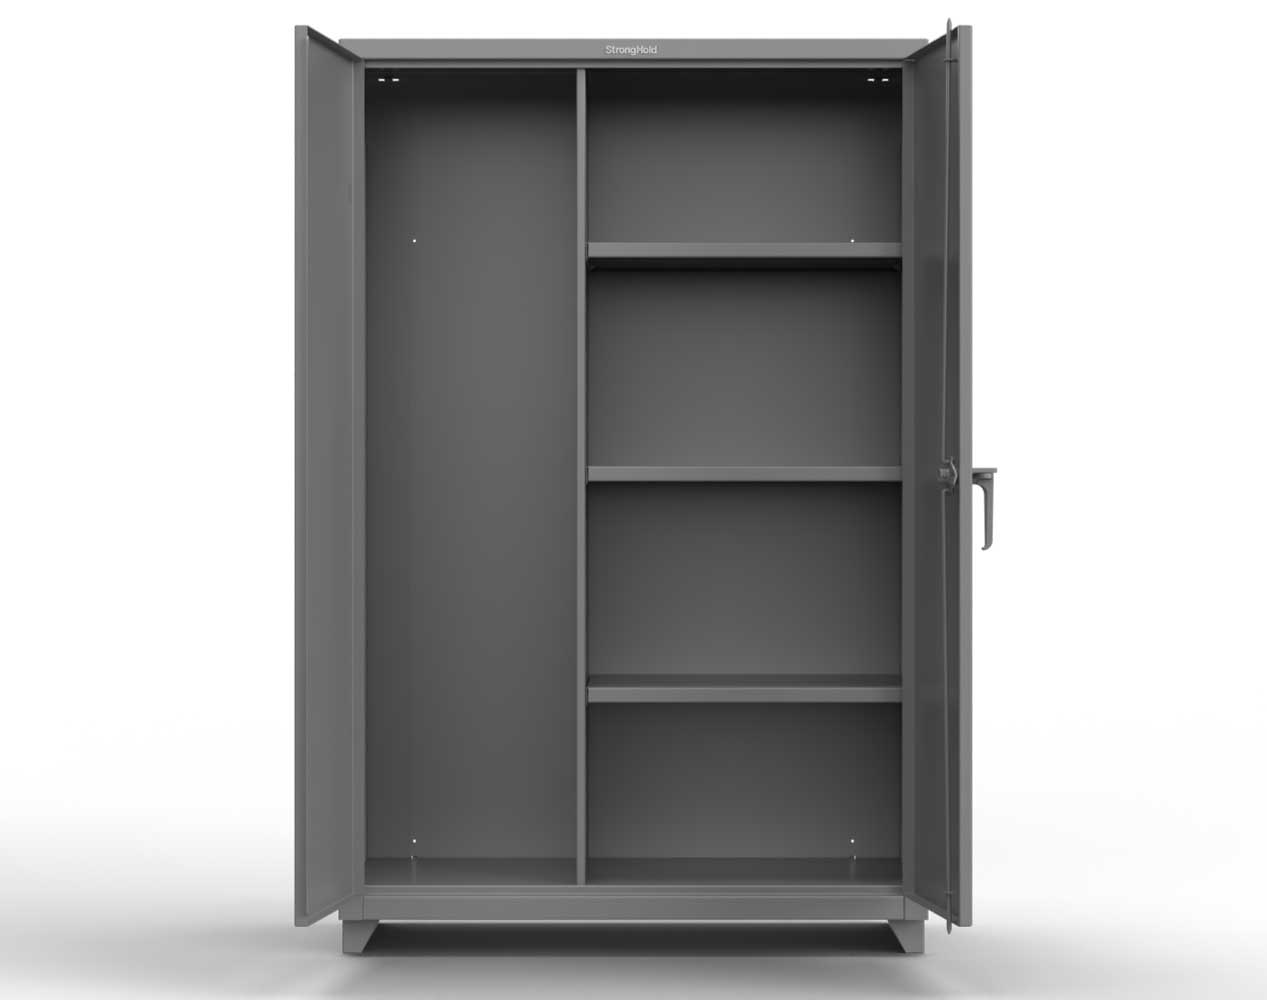 Heavy Duty 14 GA Janitorial Cabinet with 3 Shelves – 36 In. W x 24 In. D x 75 In. H